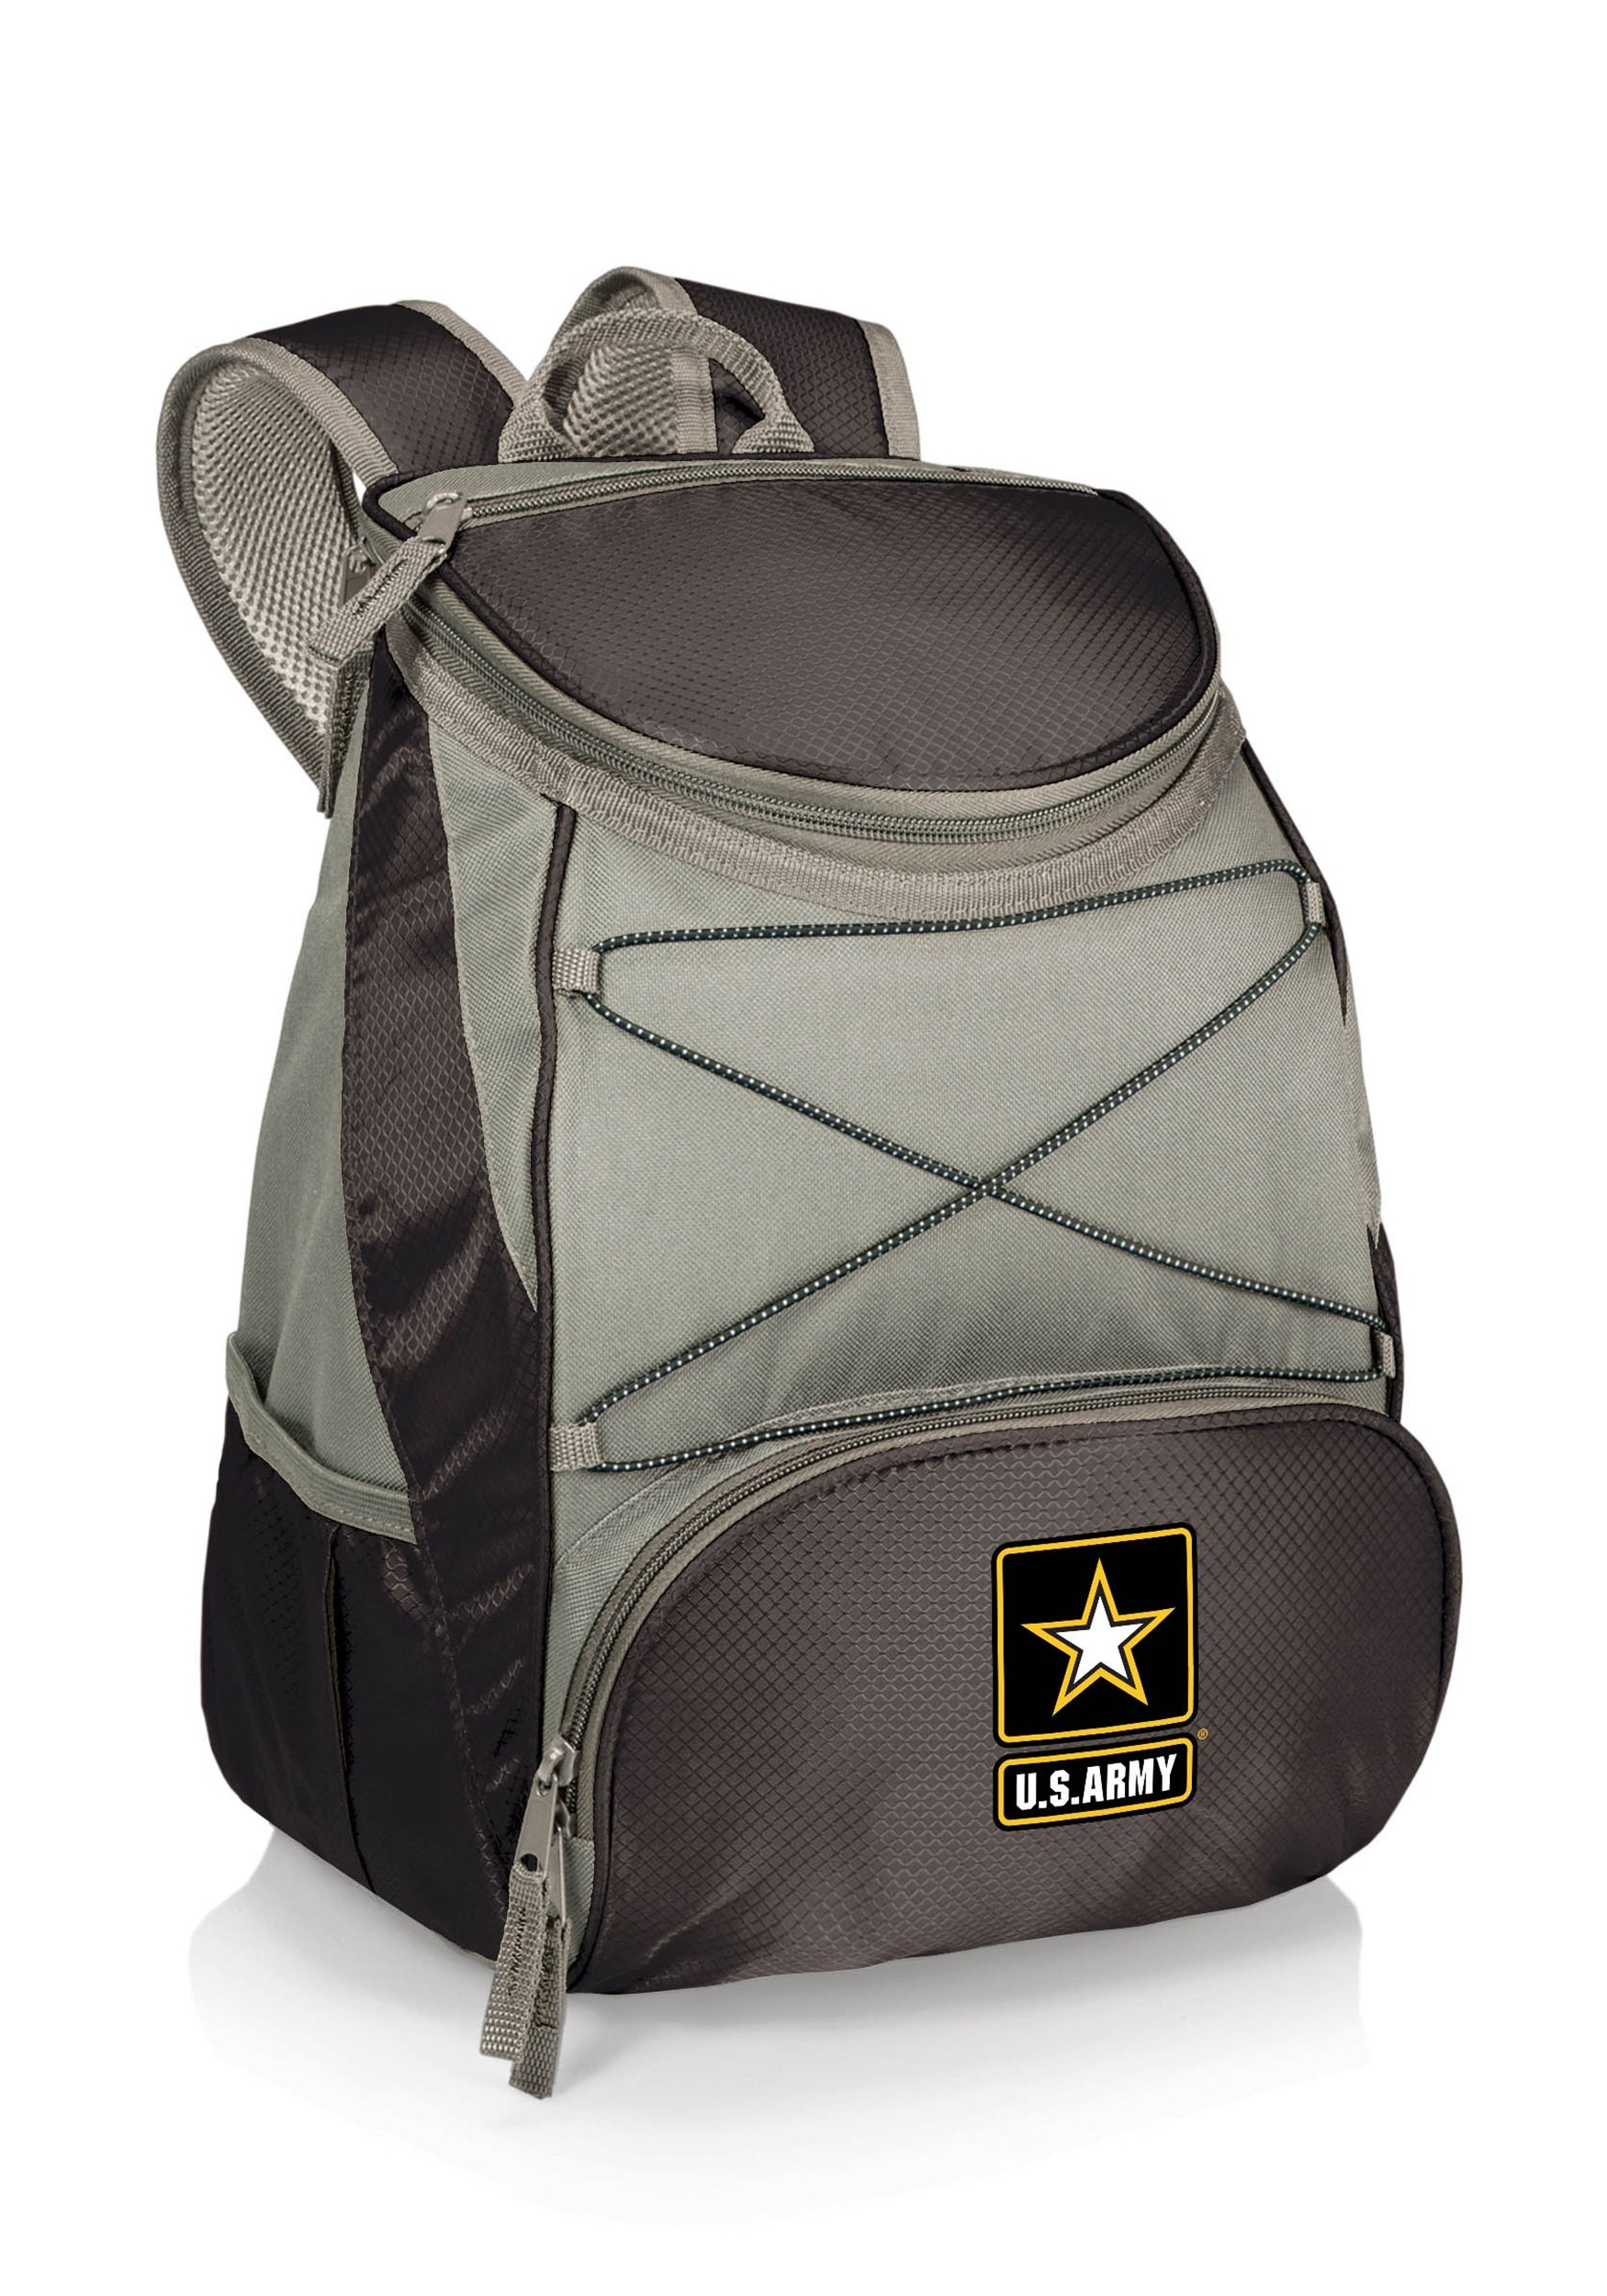 91c8cdc1243 U.S. Army PTX Cooler Backpack